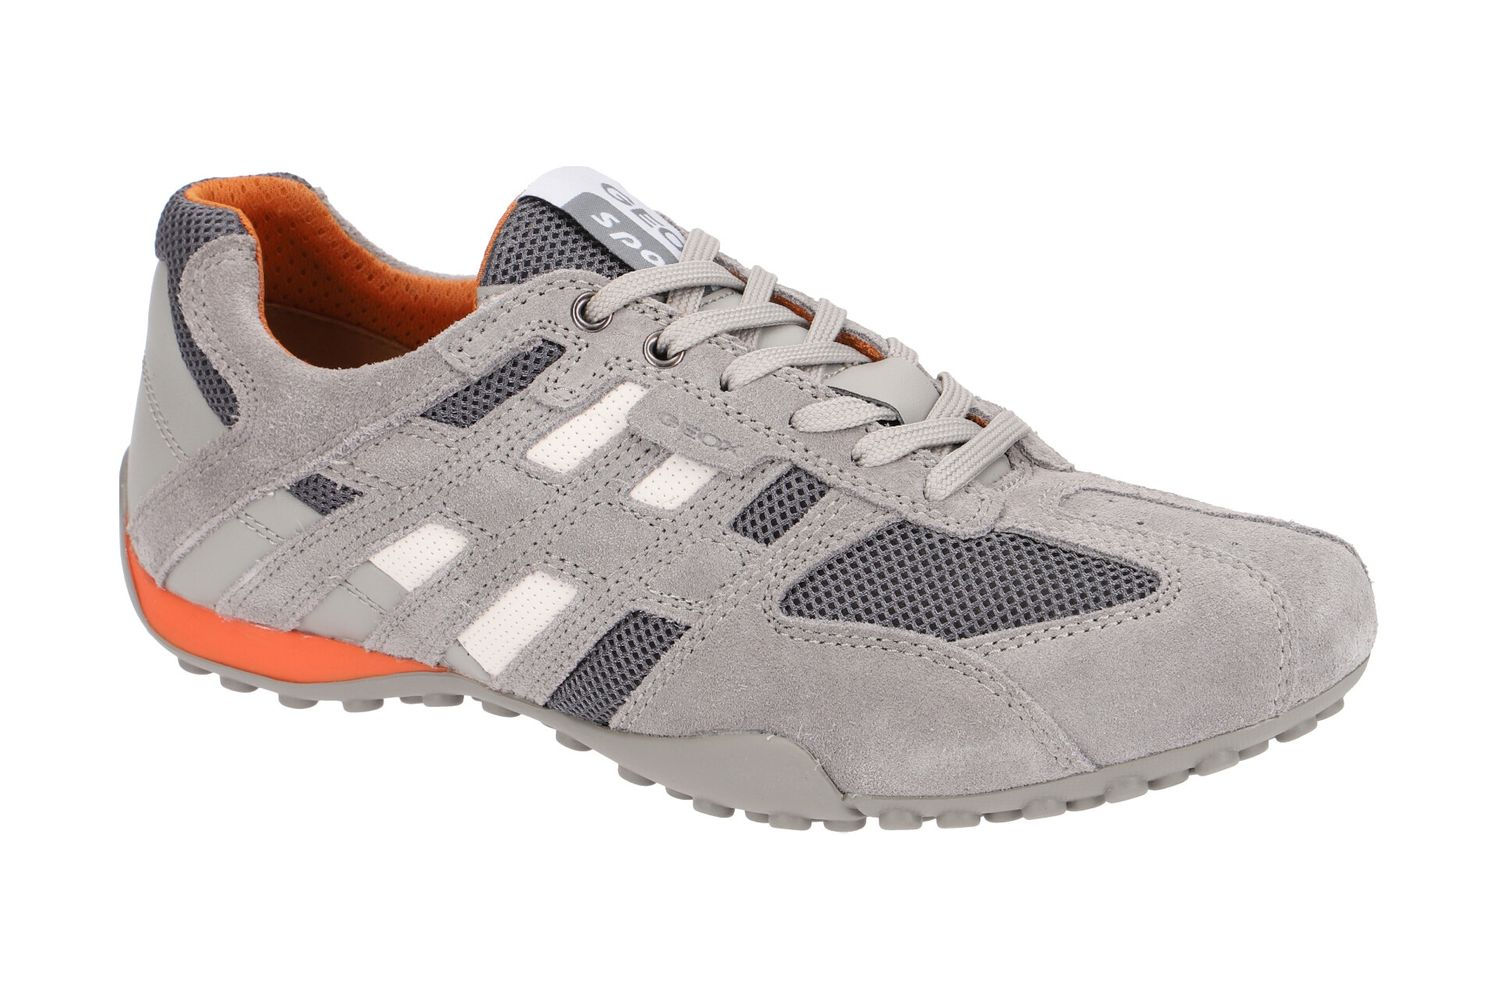 Details about Geox Respira Sports Snake K Men Sneakers Low Shoes U4207K Grey